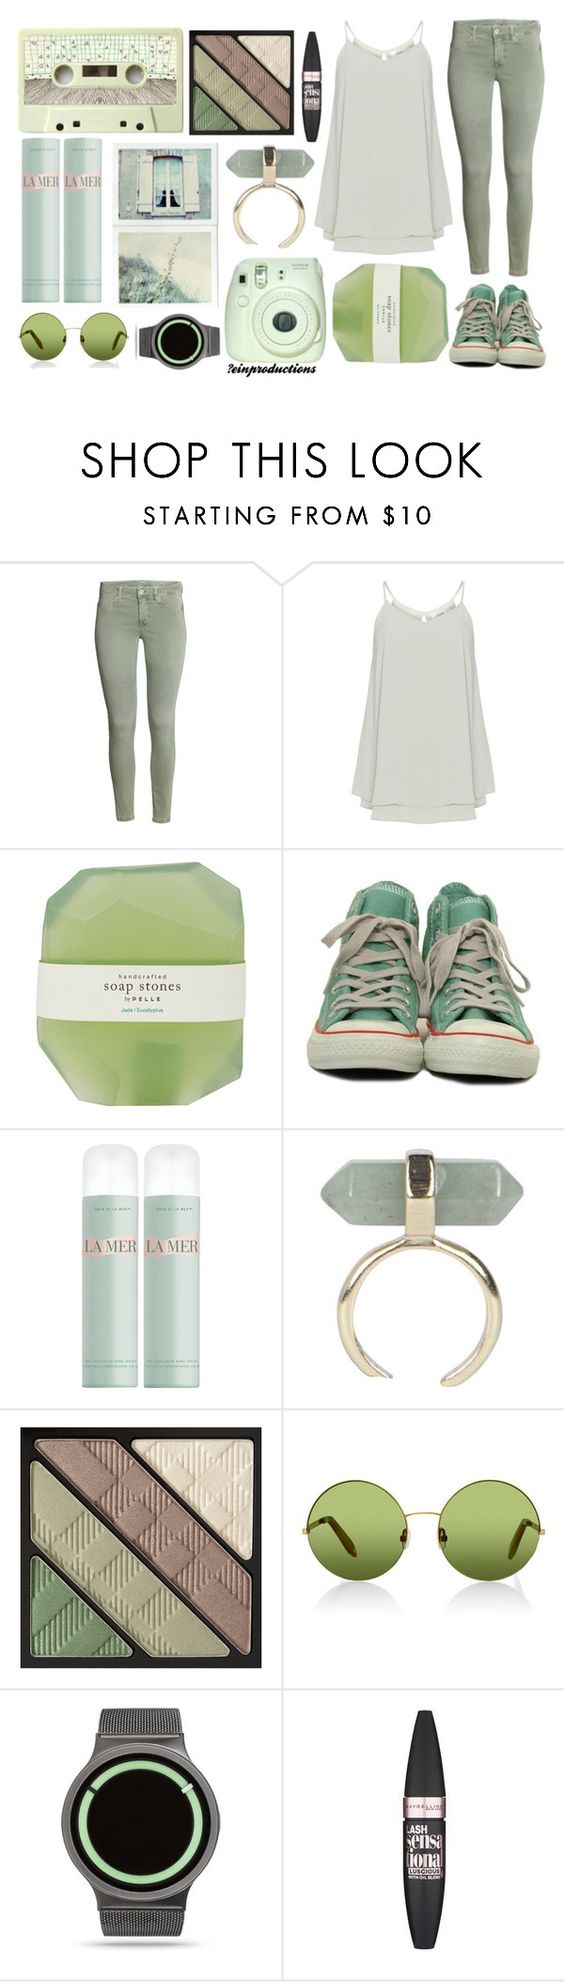 """Hip"" by einproductions ❤ liked on Polyvore featuring Zizzi, Pelle, Converse, La Mer, Boohoo, Burberry, Victoria, Victoria Beckham, ZIIIRO and Maybelline"